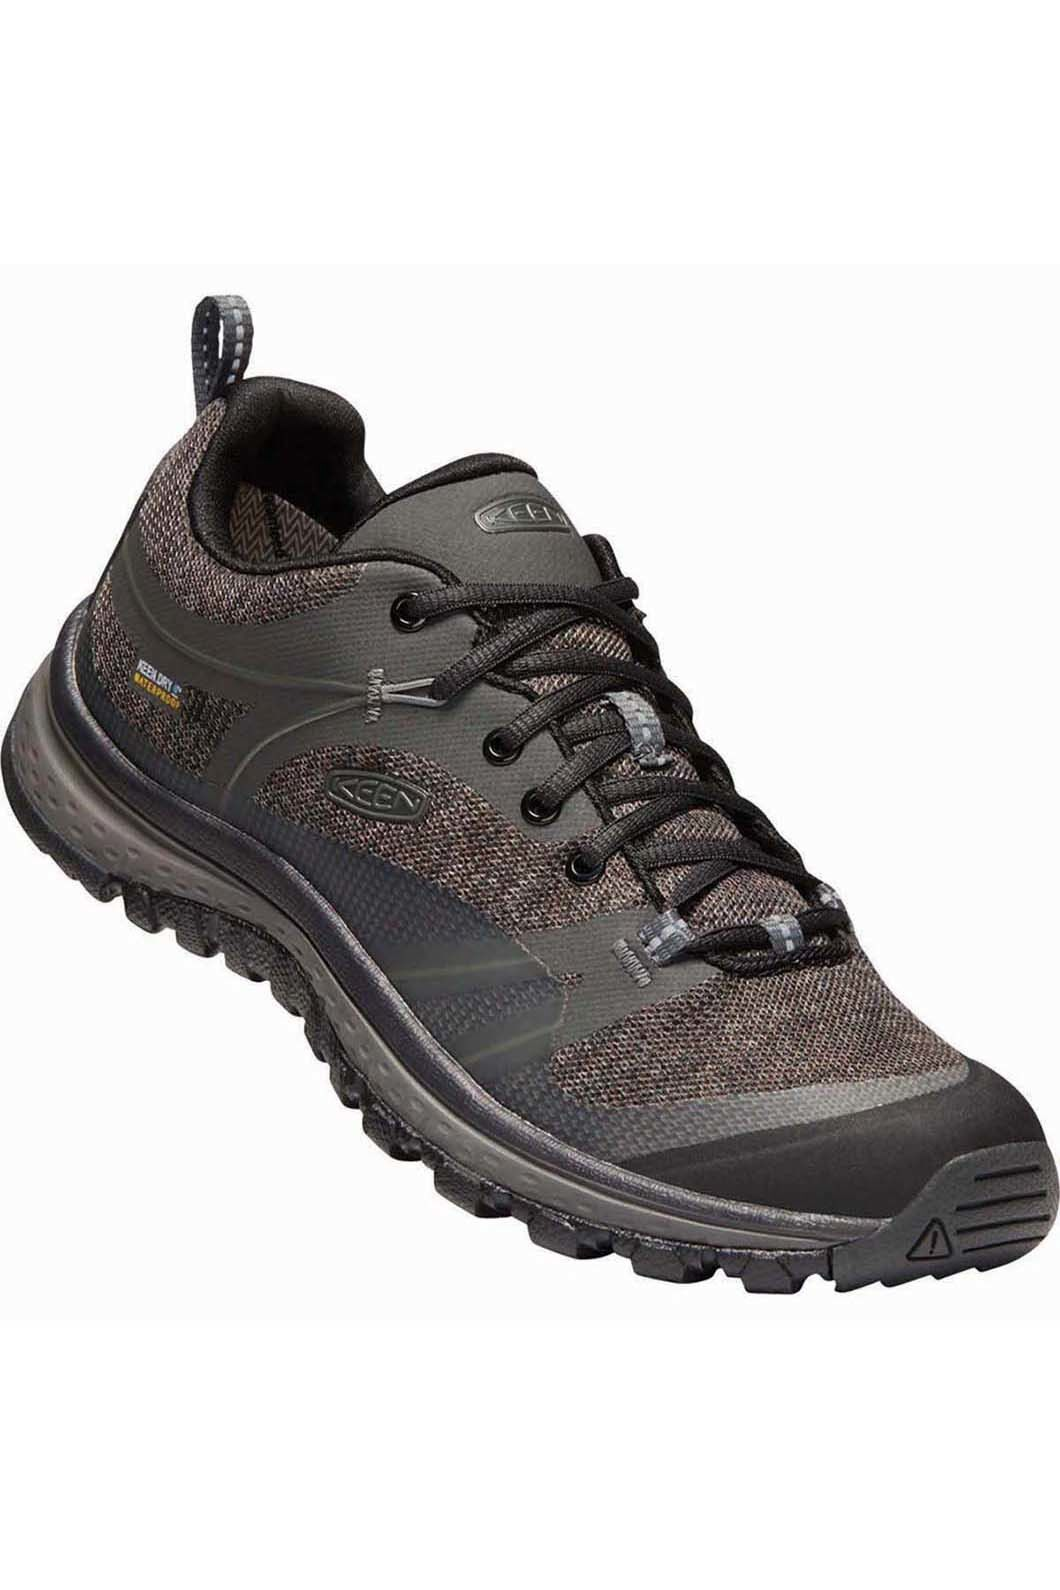 Keen Women's Terradora WP Hiking Shoes, Raven/Gargoyle, hi-res